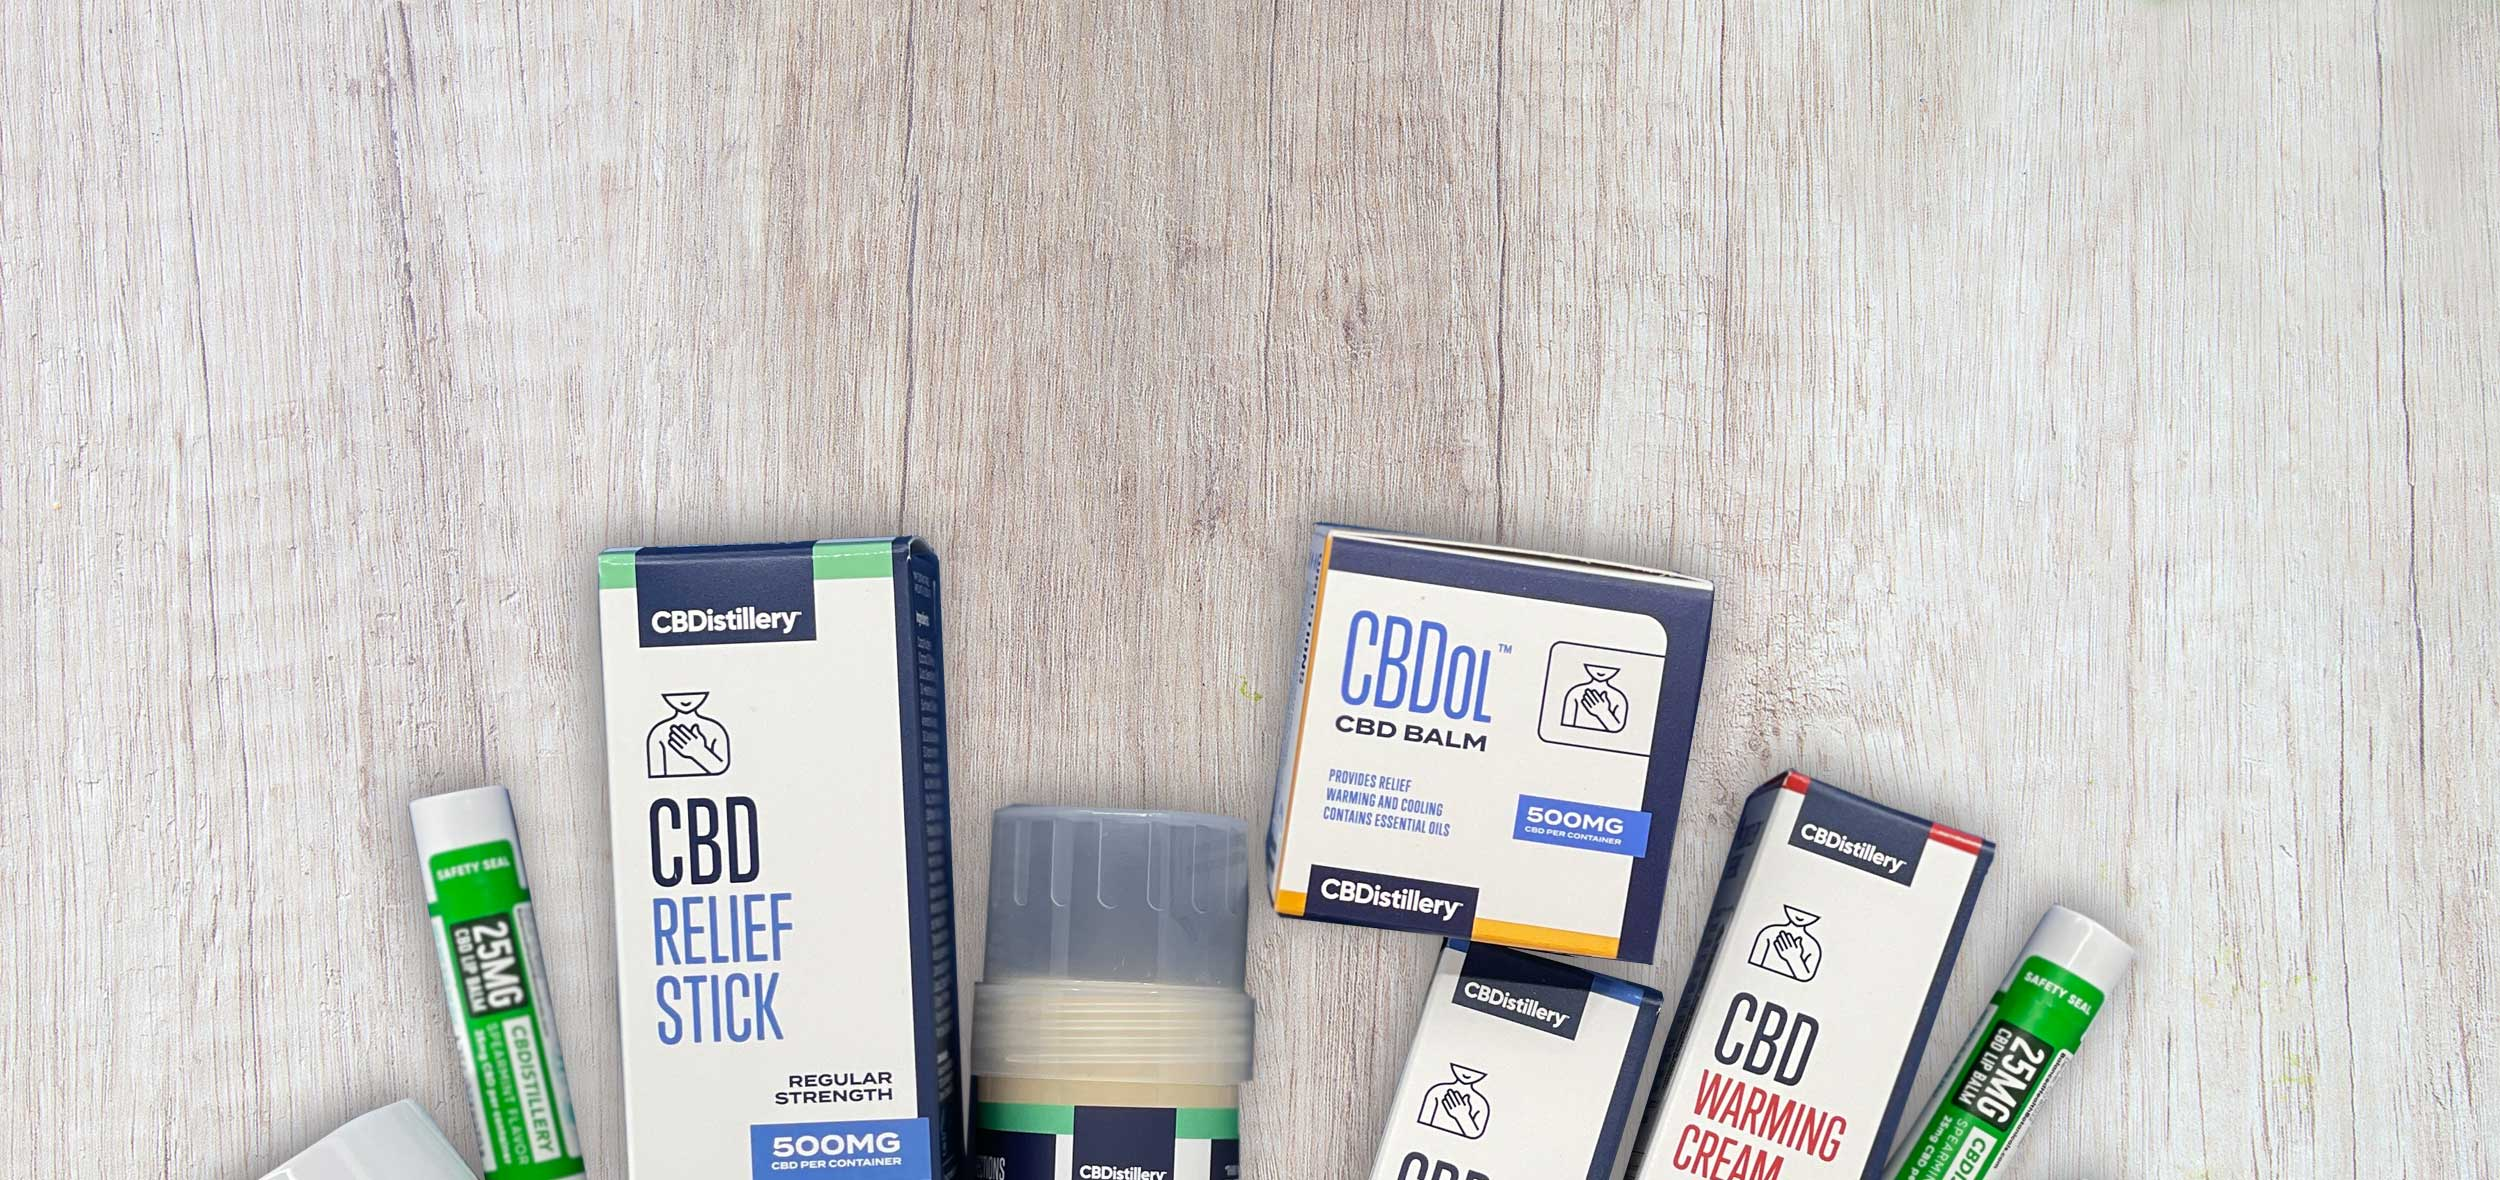 Subscribe and save 5% at CBD.market online store